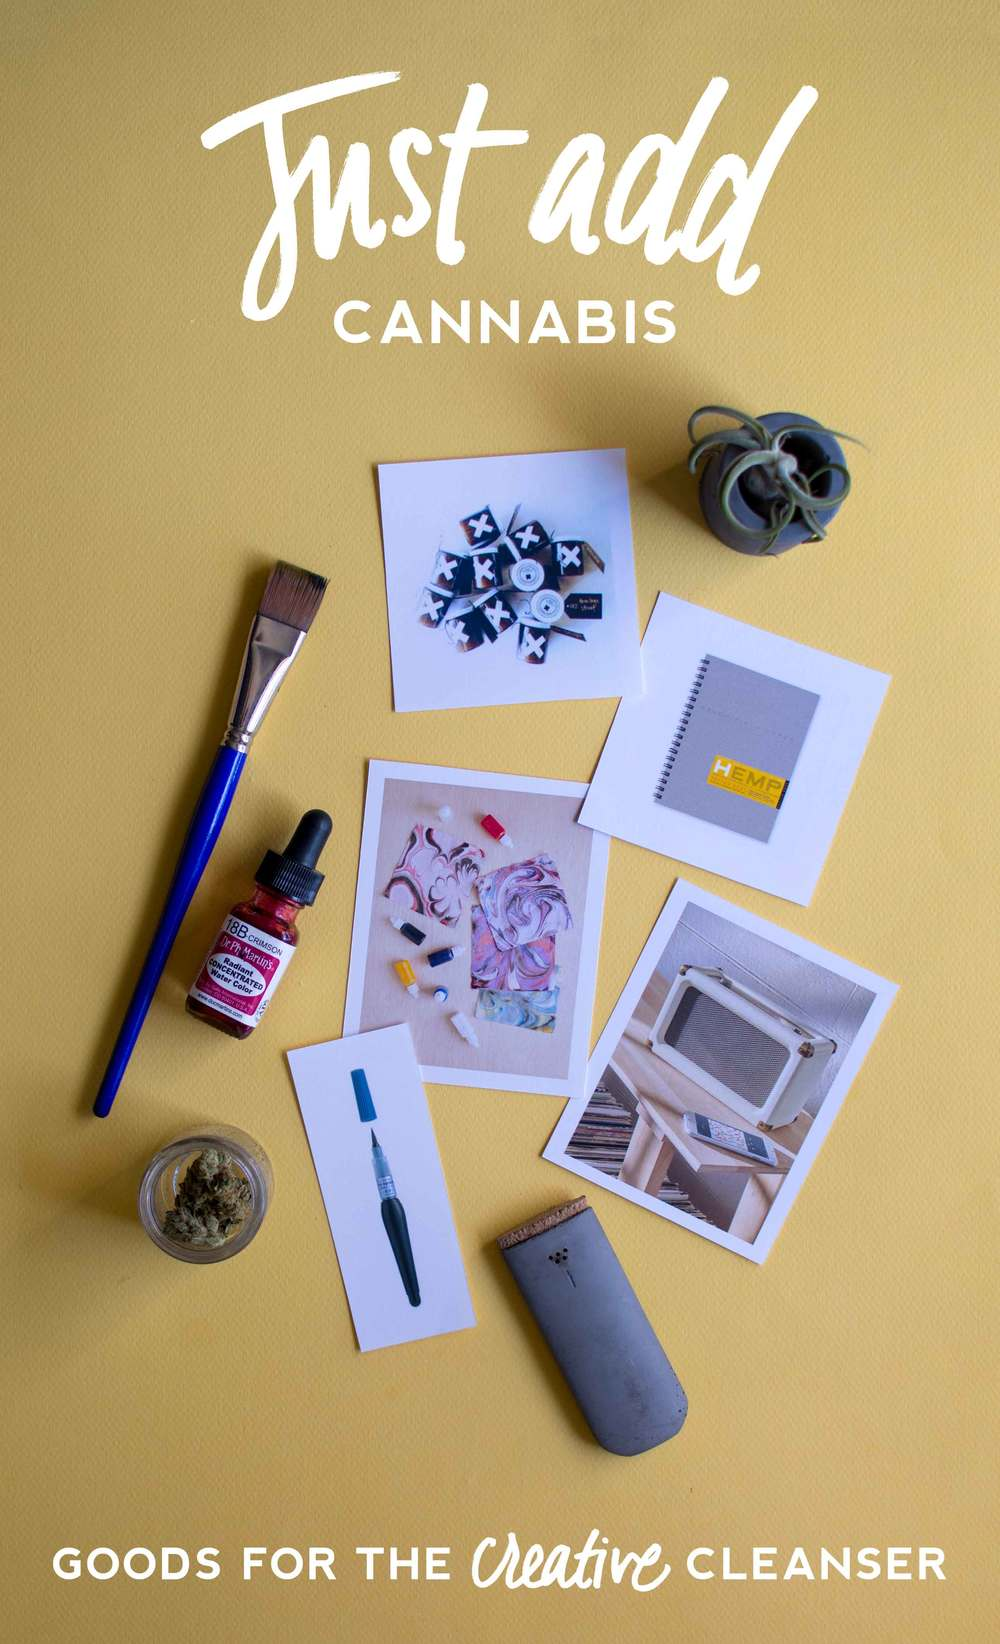 just-add-cannabis-goods-for-creative-cleanse-kristen-williams